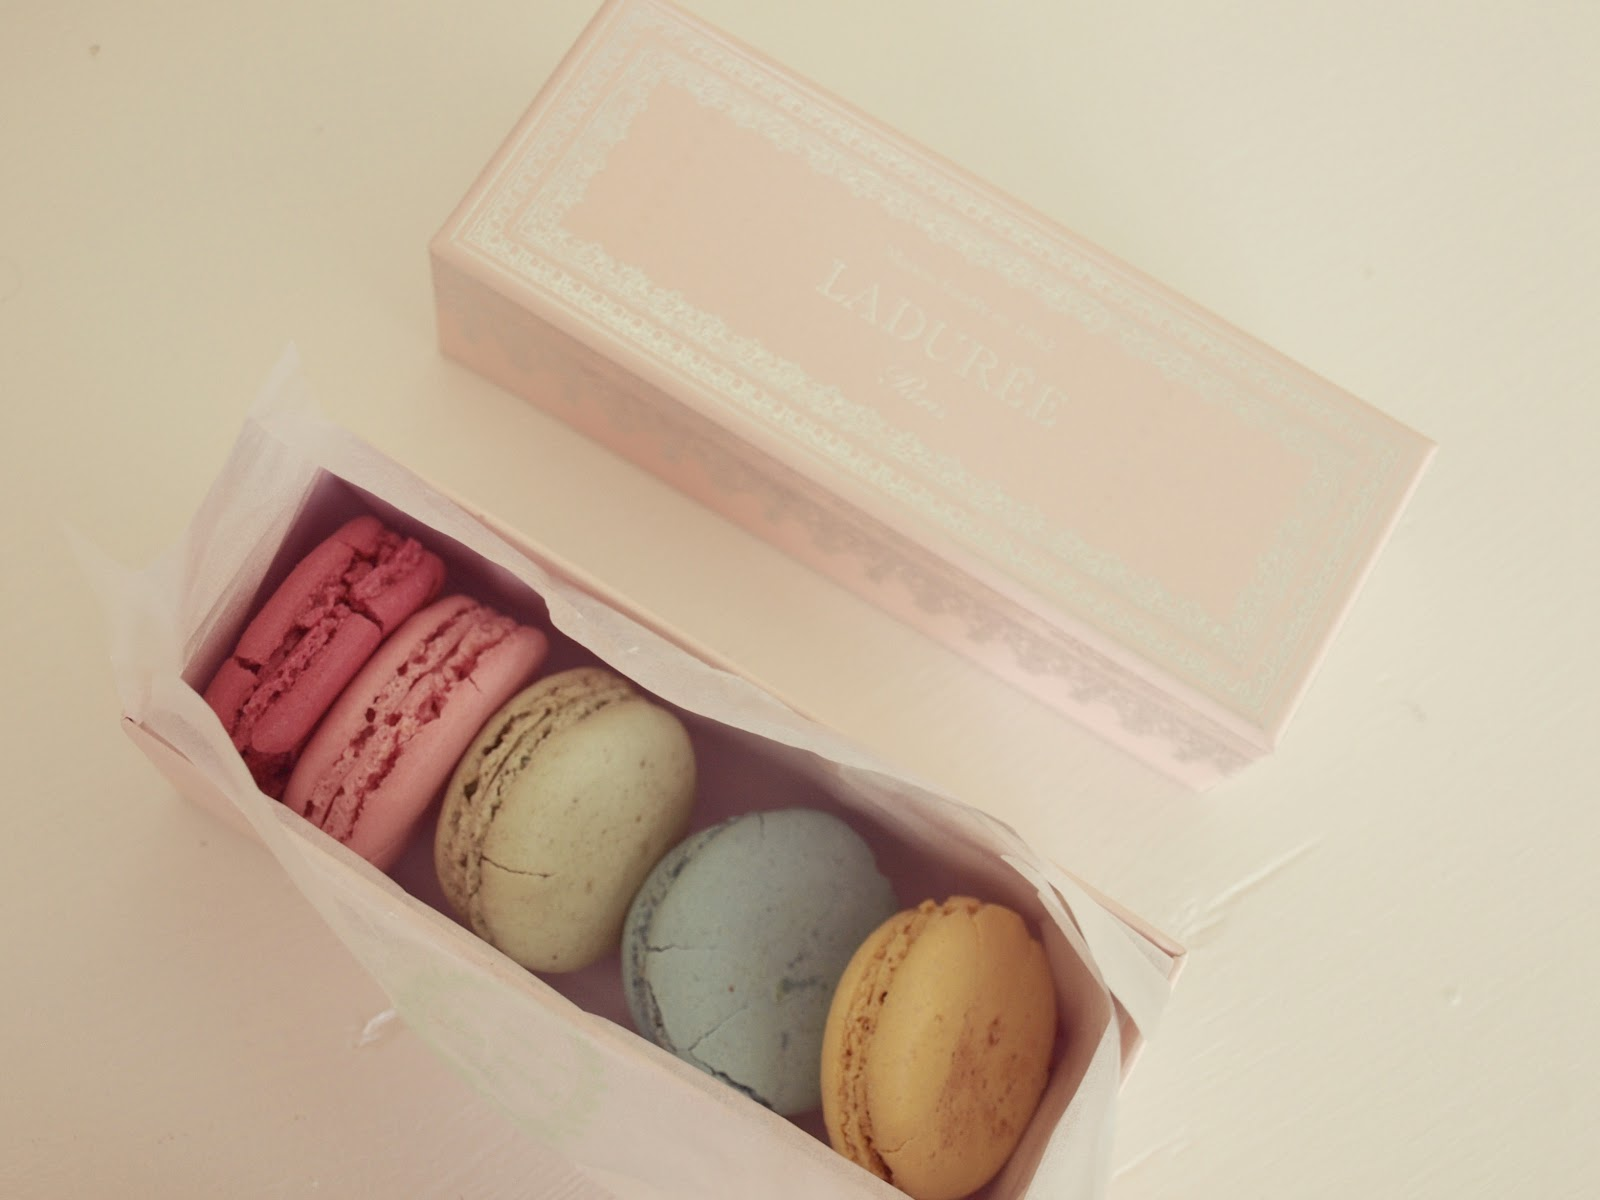 Pink box of colorful Laduree French macarons by Hello Lovely Studio